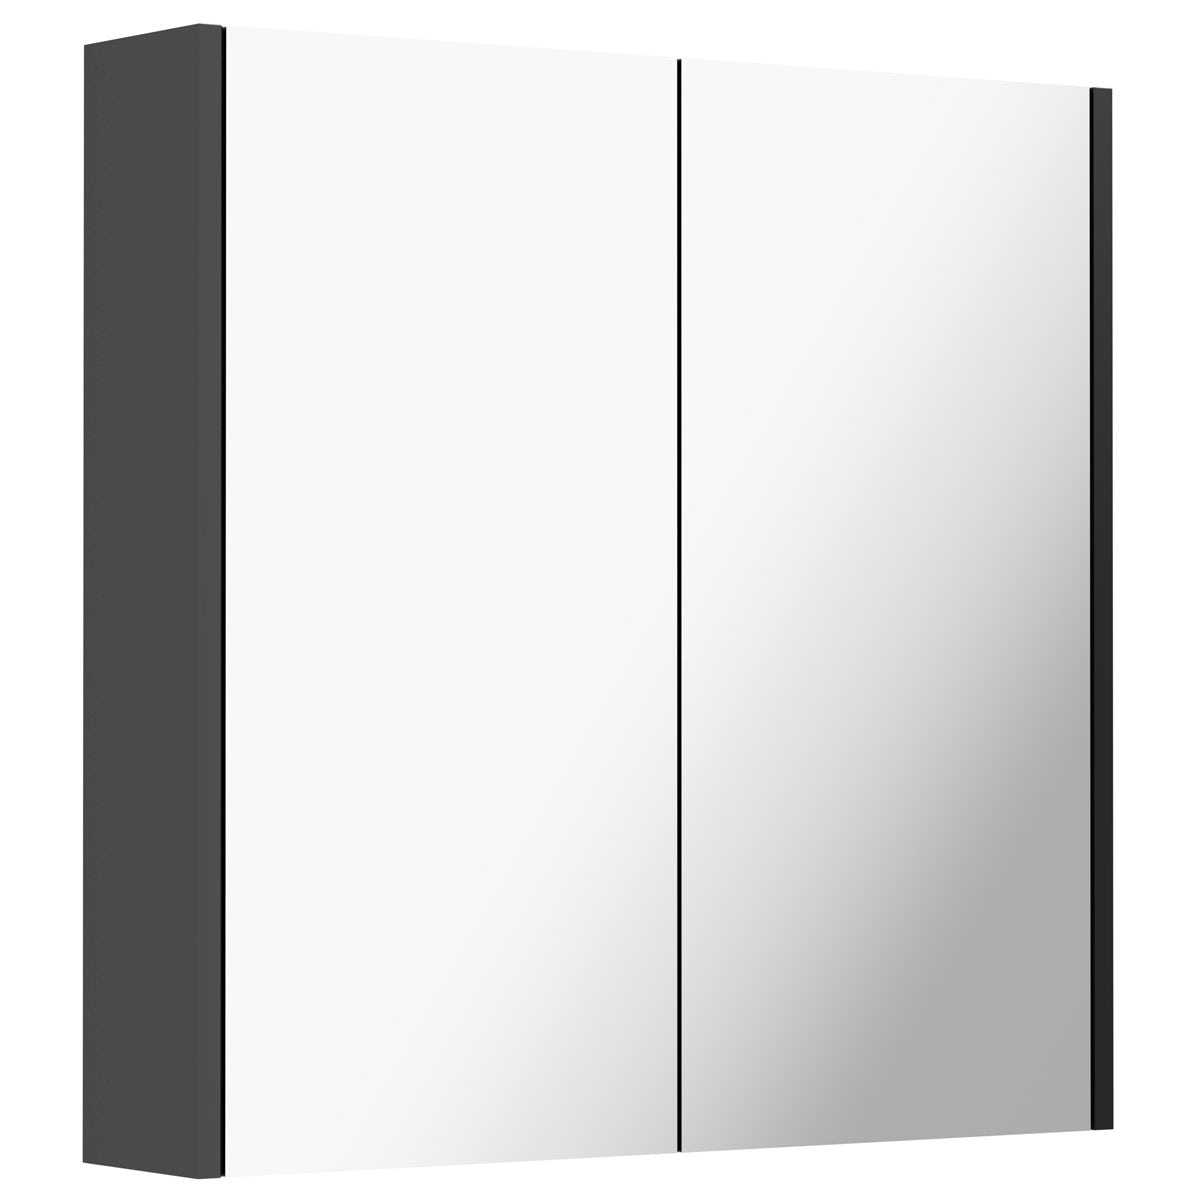 Mode Cooper anthracite mirror cabinet 600mm